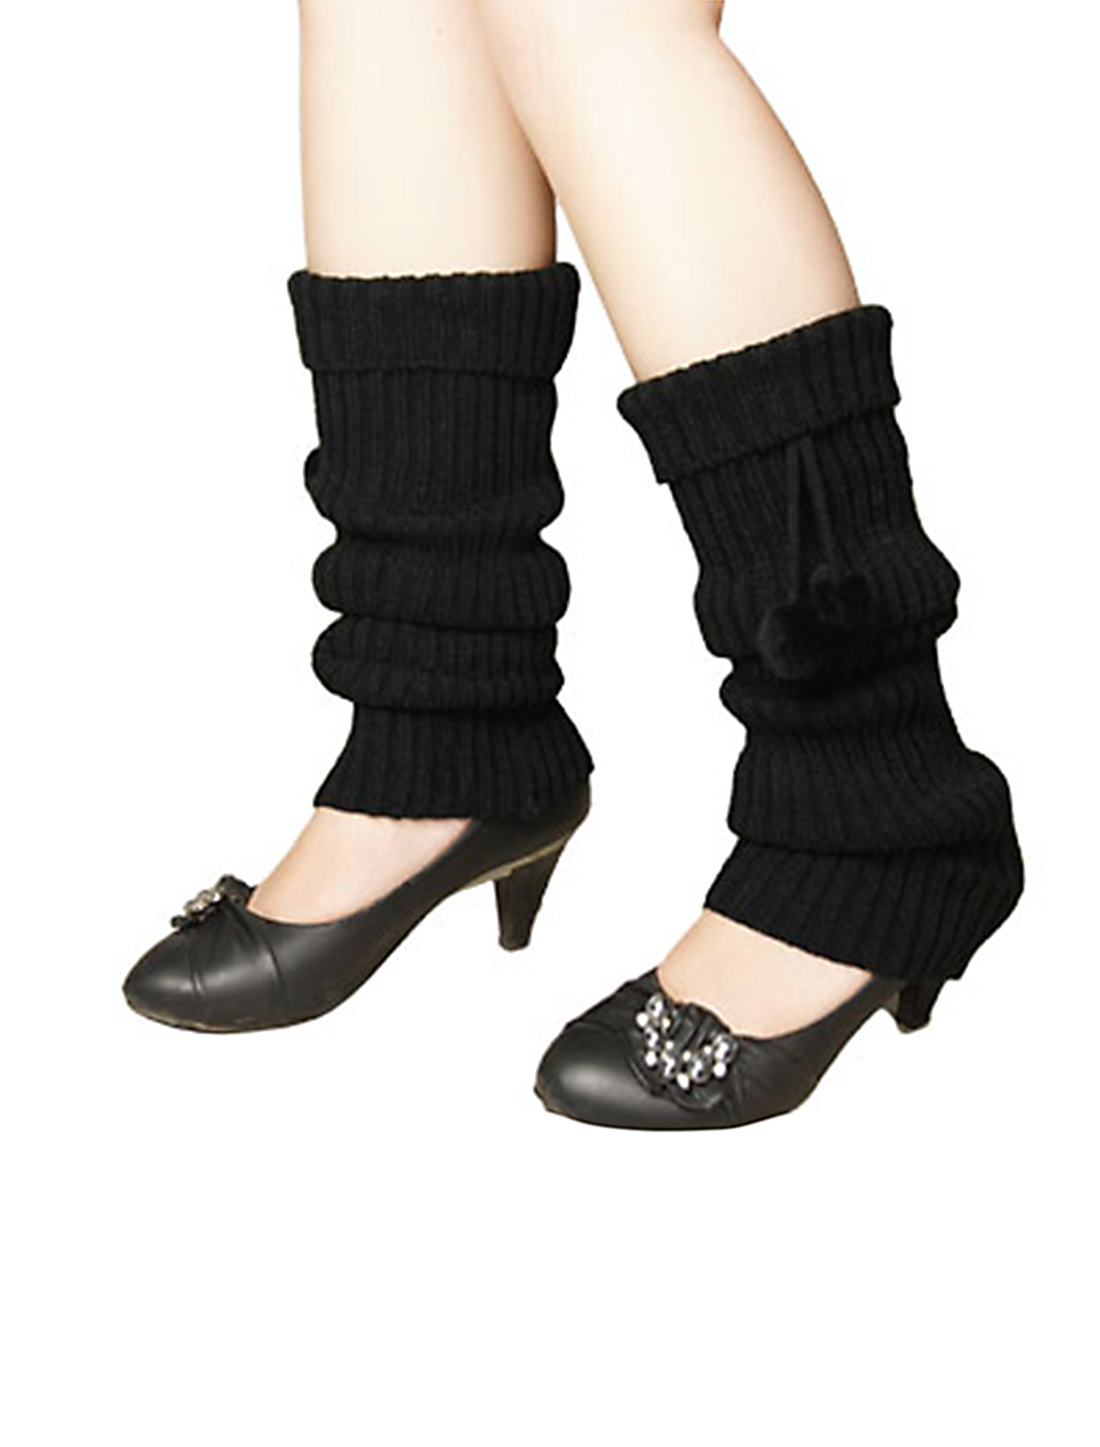 Women Pom Pom Accent Stretchy Knit Leg Warmers Black